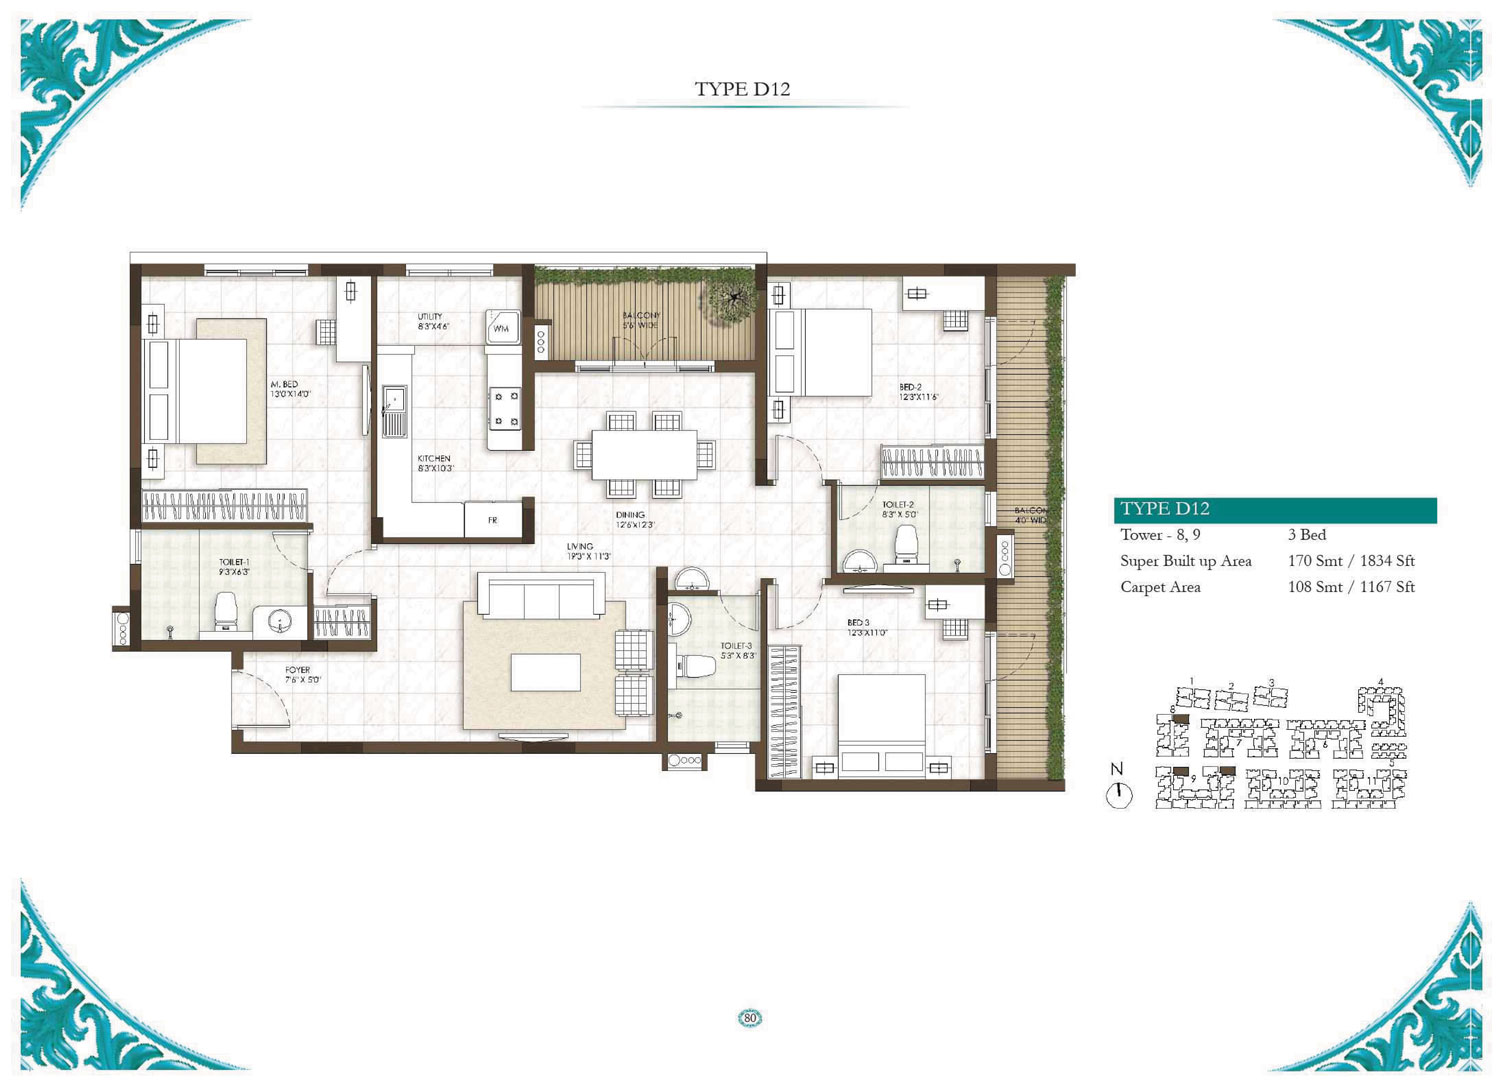 Type D12 - 3 Bed - 1834 Sq Ft